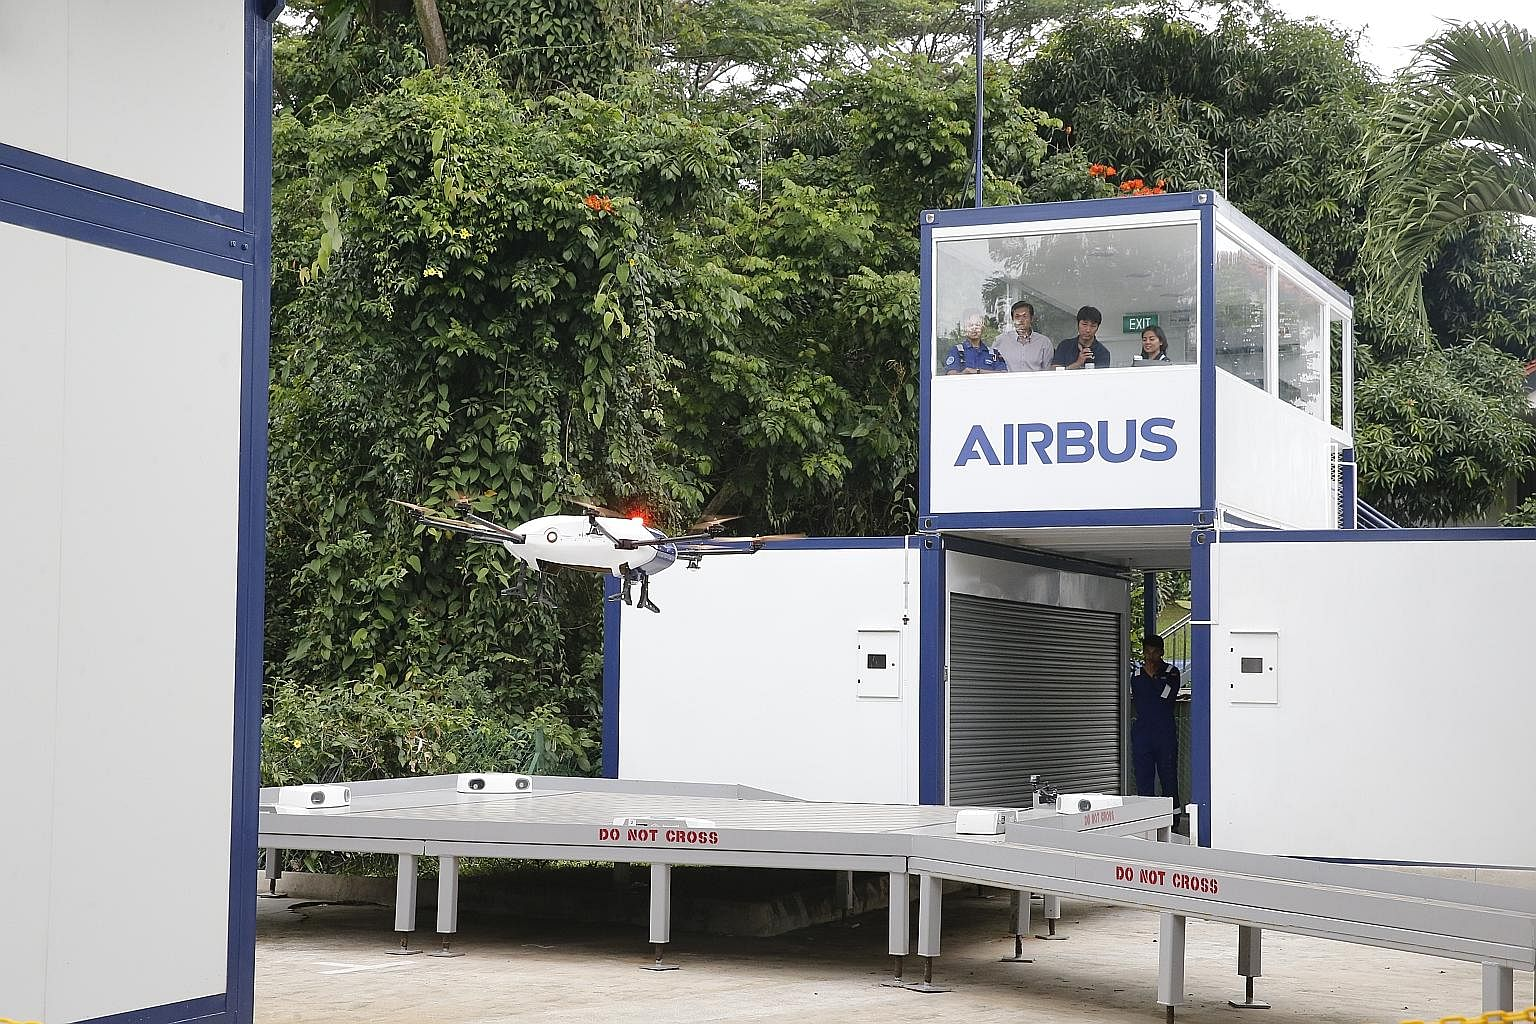 Airbus Helicopters' Skyways unmanned air vehicle completed its first flight demonstration at the National University of Singapore in February last year. (From left) Thales Singapore CEO Kevin Chow, Minister for Trade and Industry Chan Chun Sing, Thal